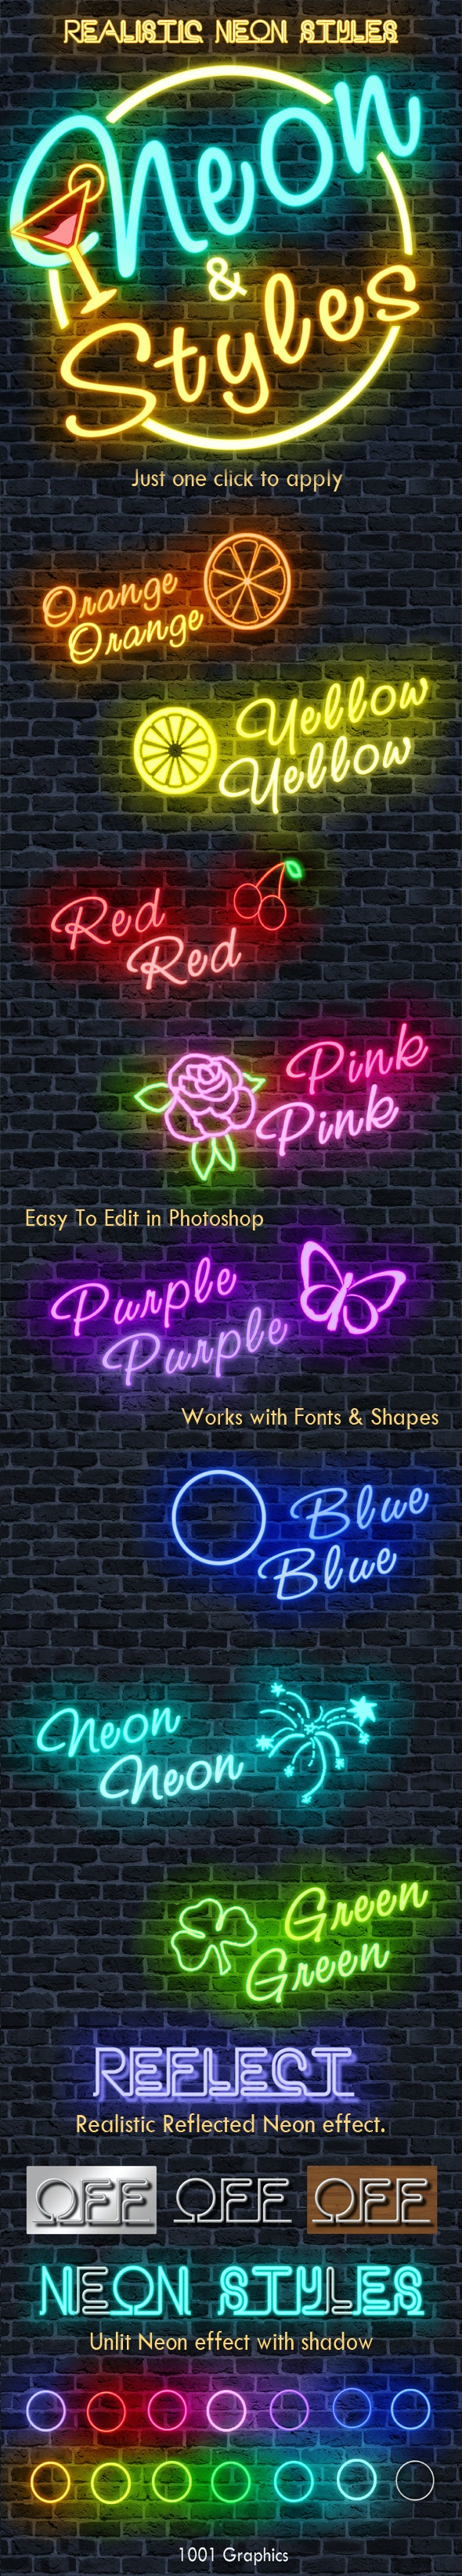 50 Realistic Neon Text Styles - Photoshop Add-ons